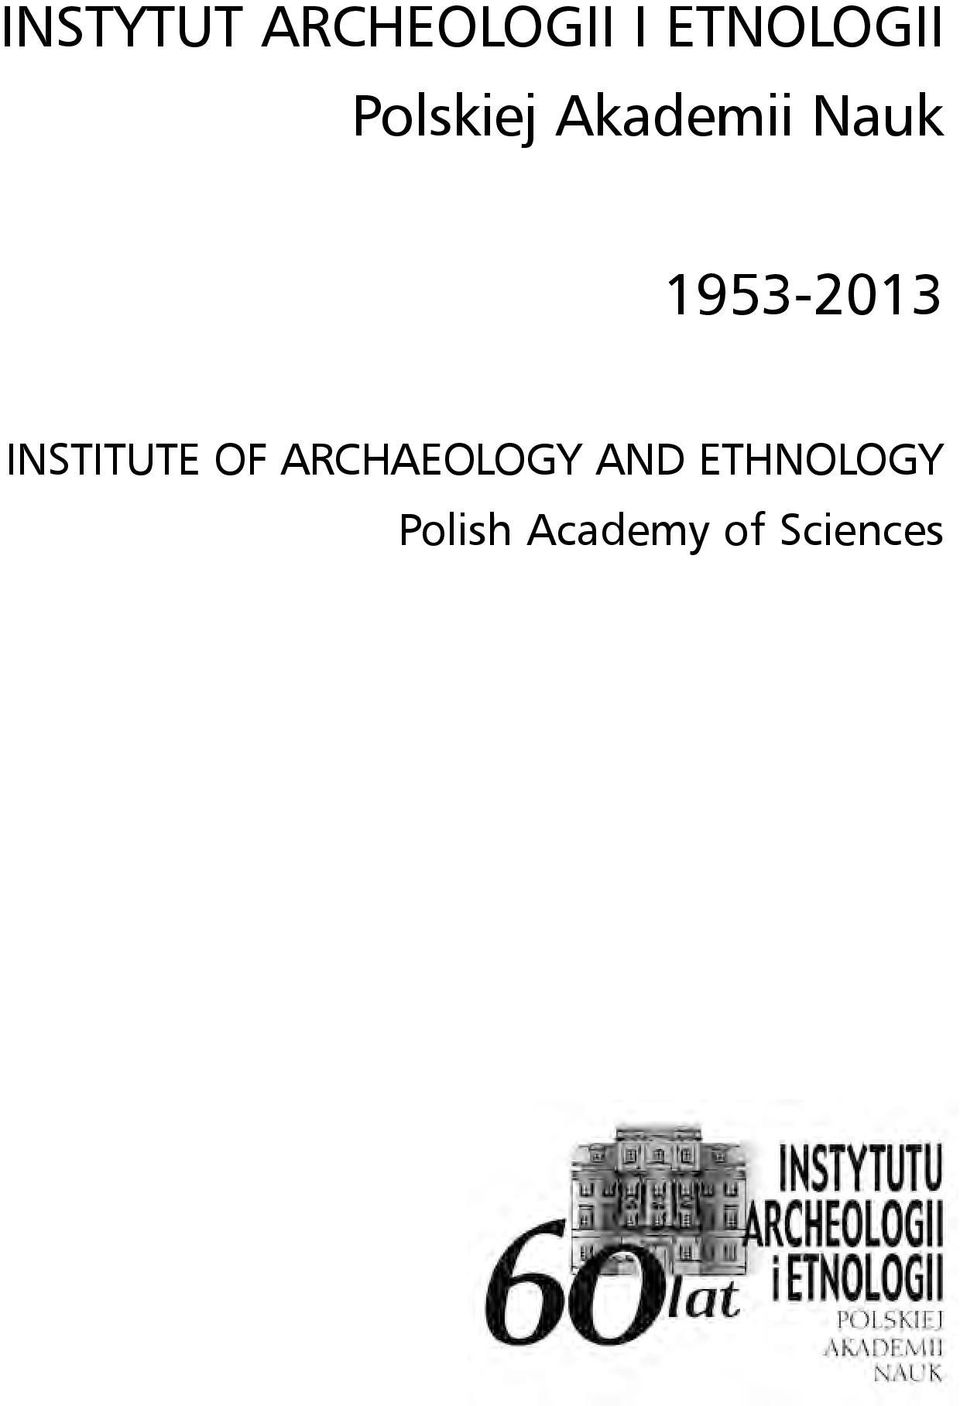 Institute of Archaeology and